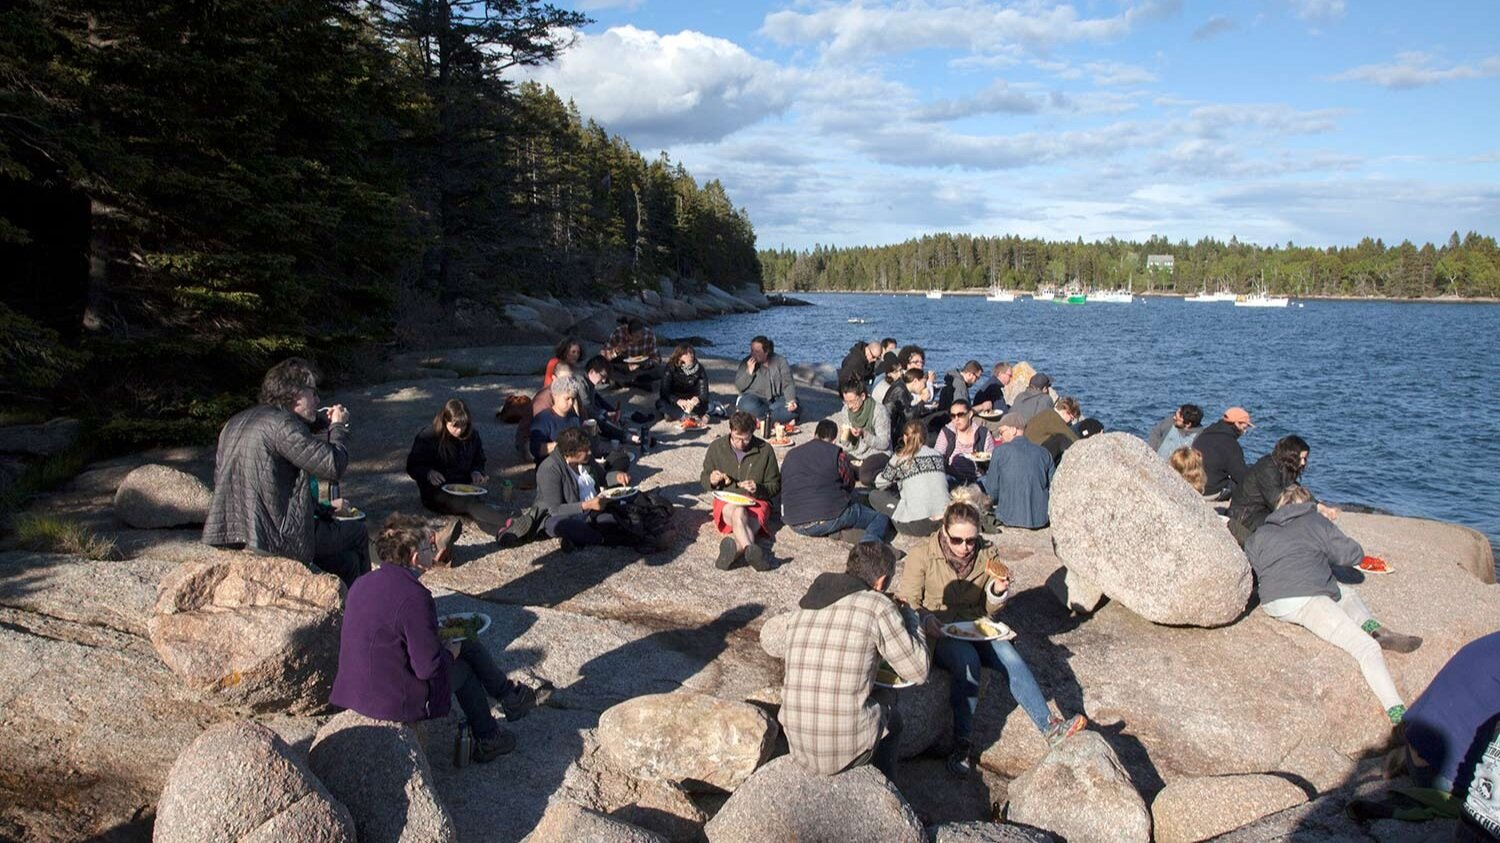 People sit on rocks near the ocean, eating lunch